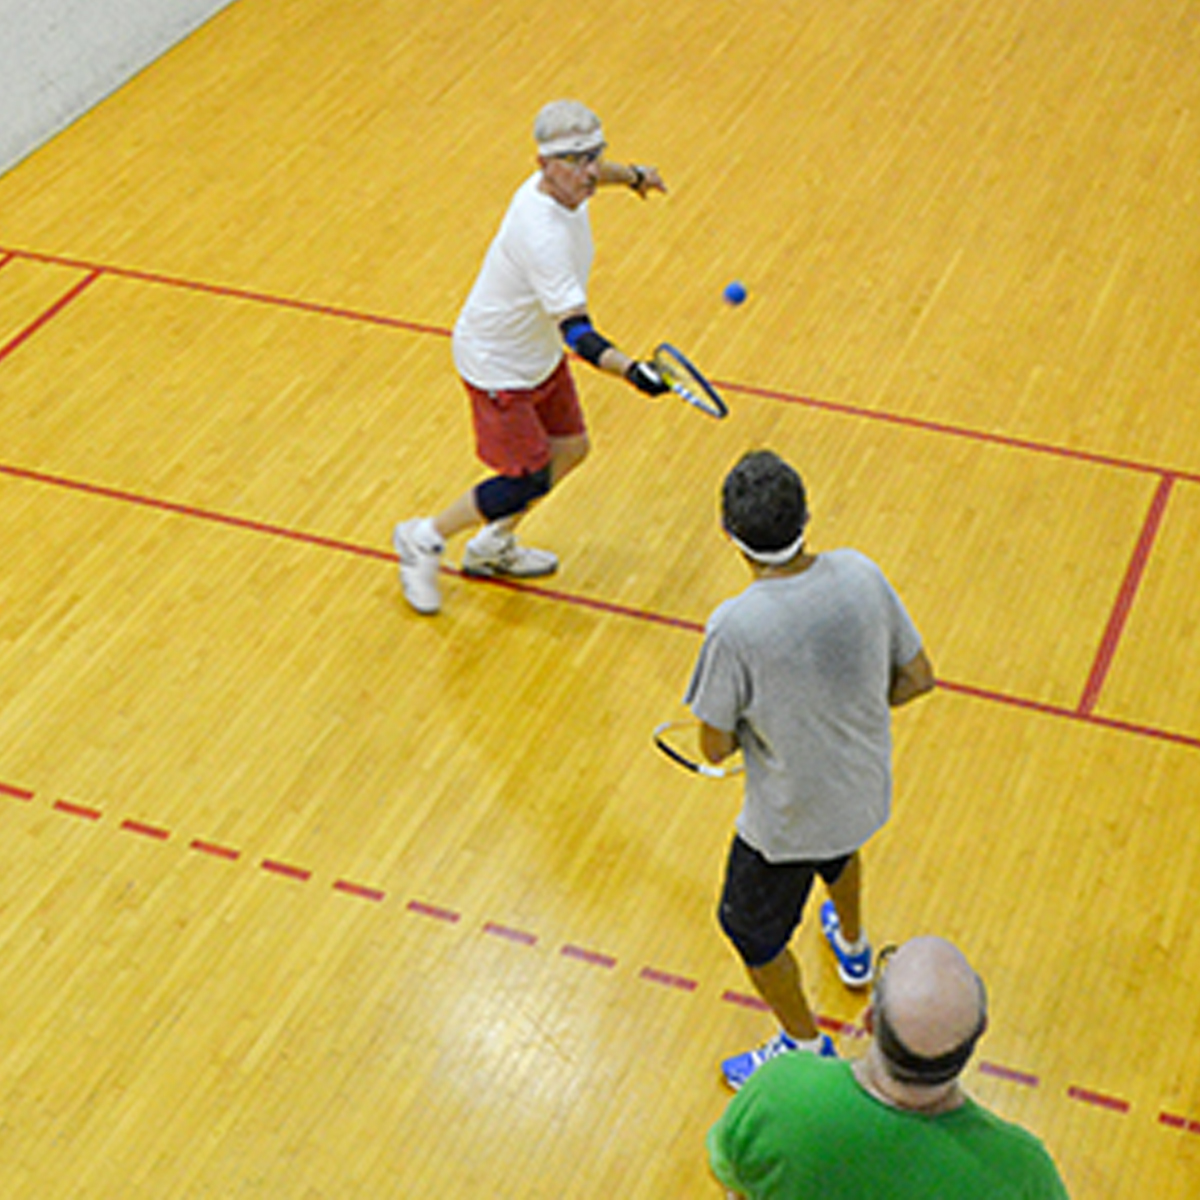 Racquetball Albany, Racquetball Capital District, Racquetball Colonie, Racquetball Latham, Racquetball Niskayuna